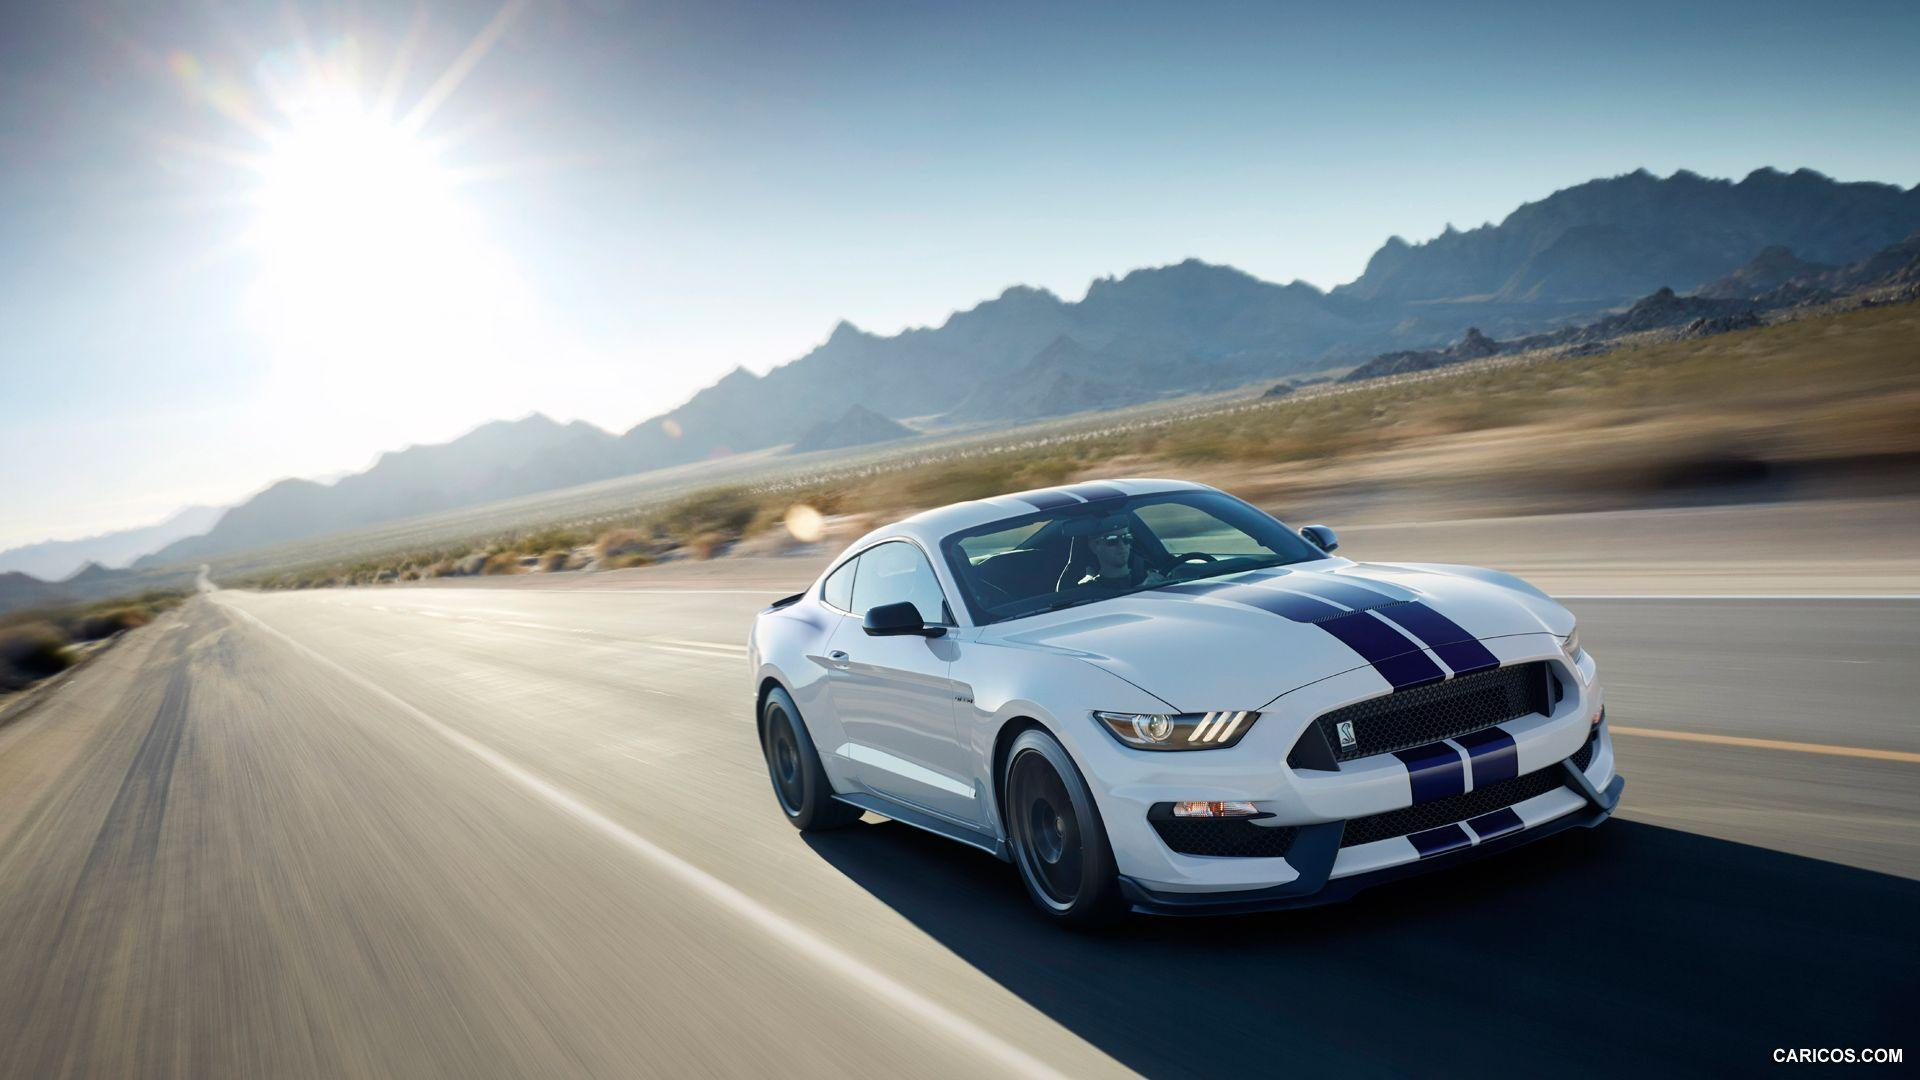 2016 ford mustang shelby wallpapers - wallpaper cave